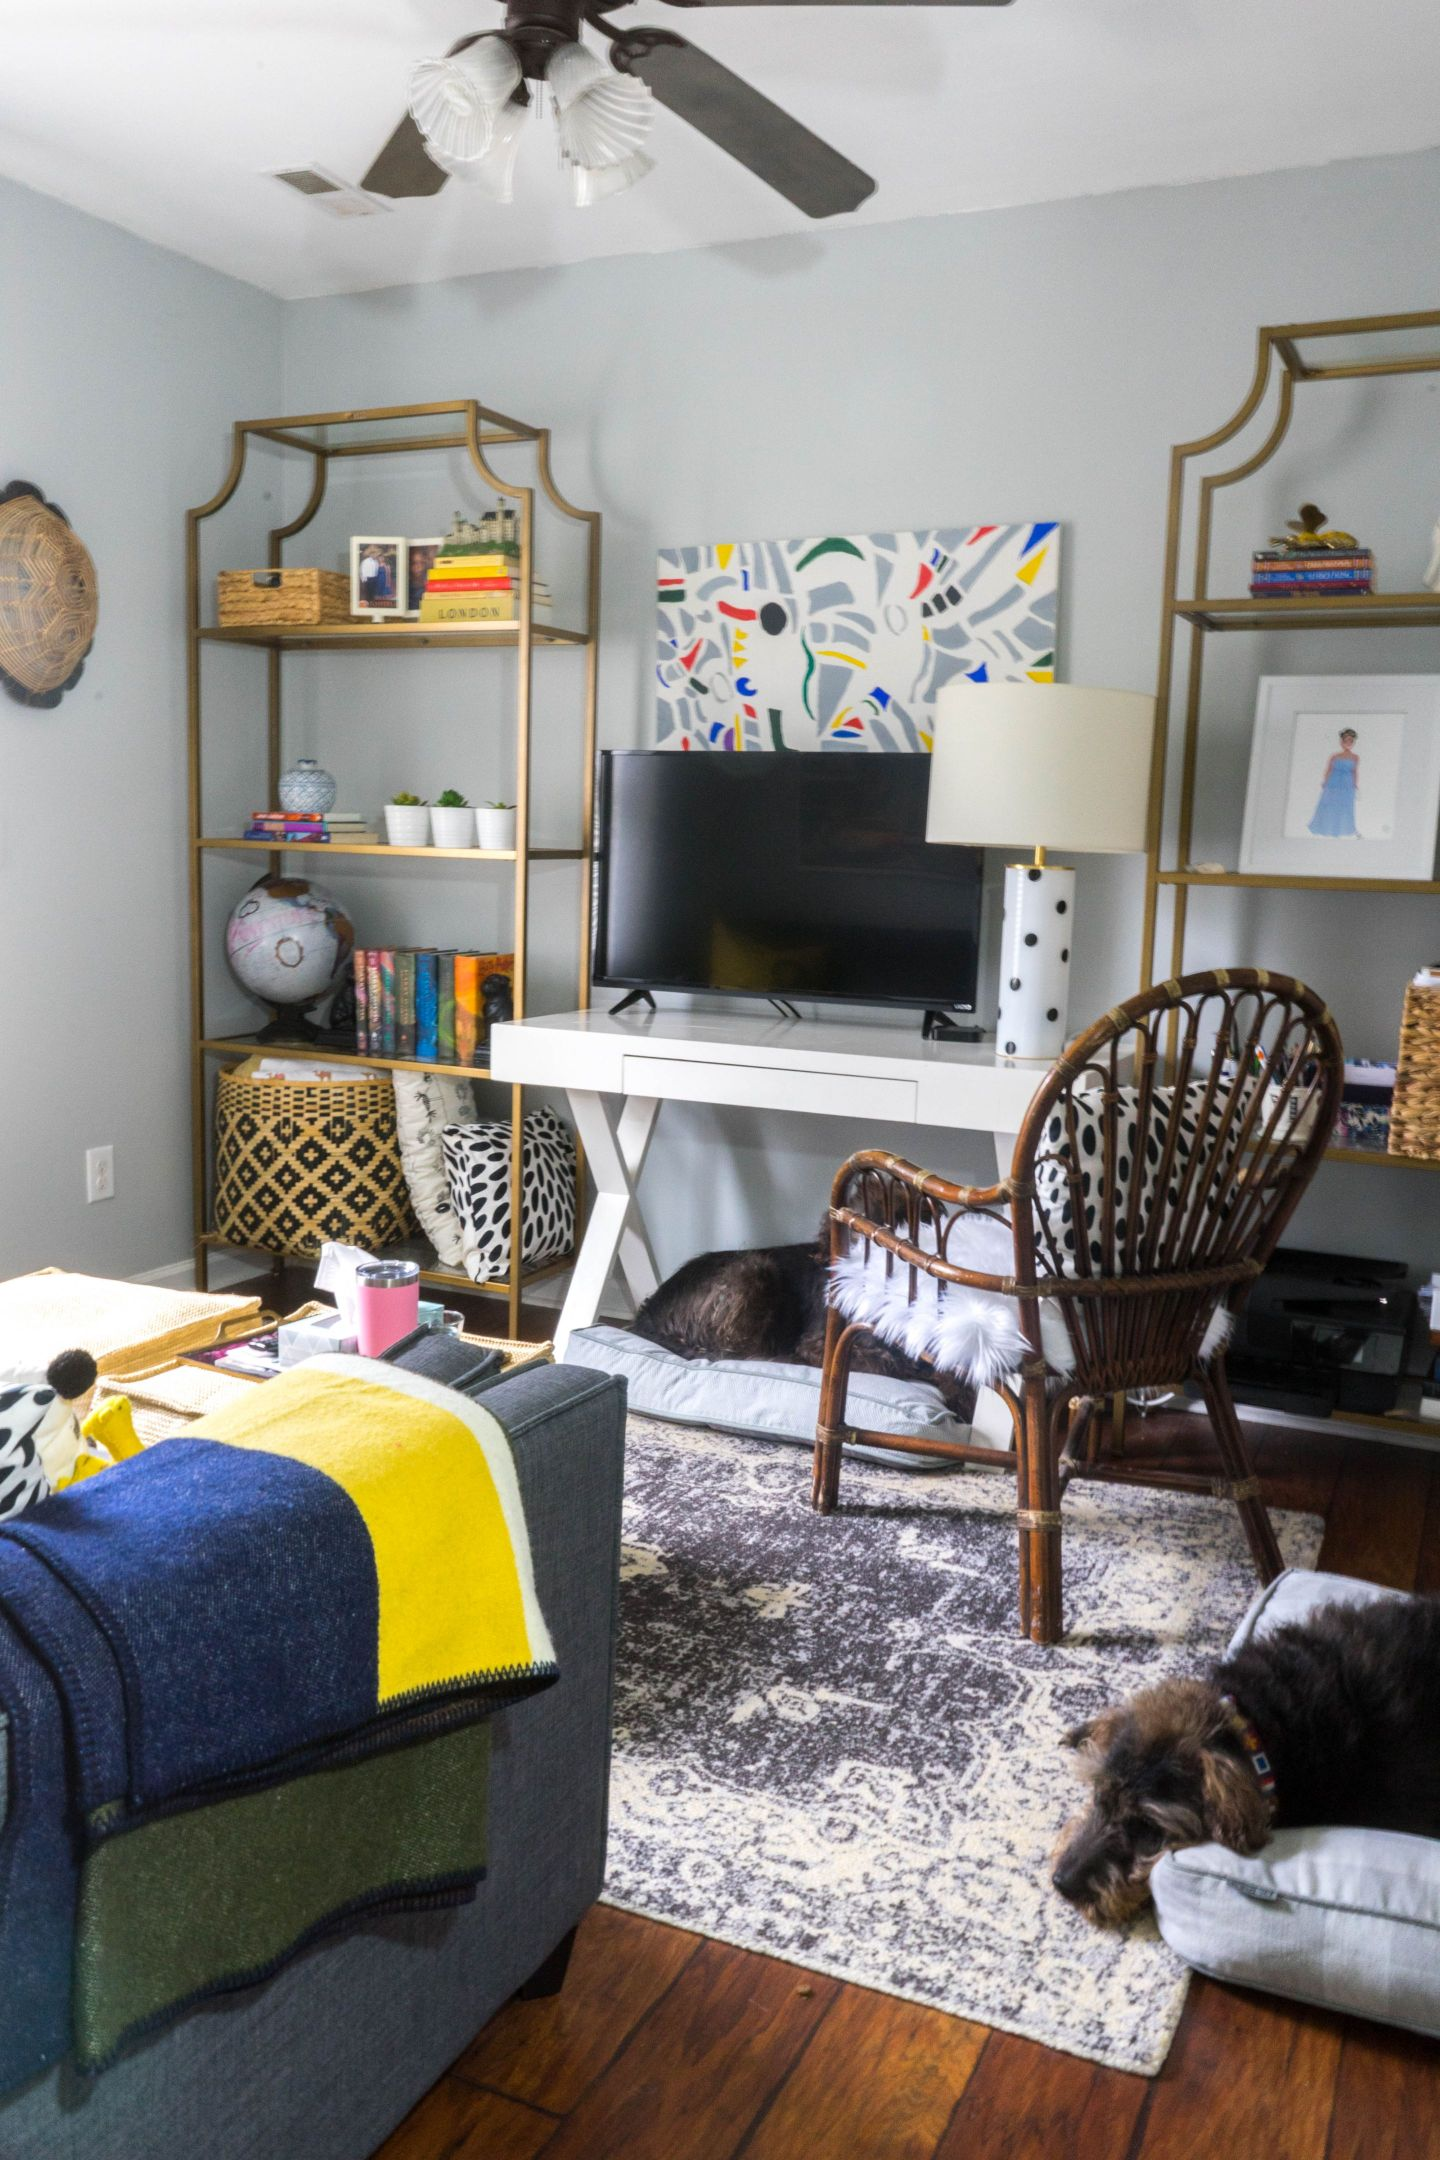 DSC00366-1440x2160 Black Southern Belle Blogger Home Tour: Preppy Home  Style in Raleigh, NC